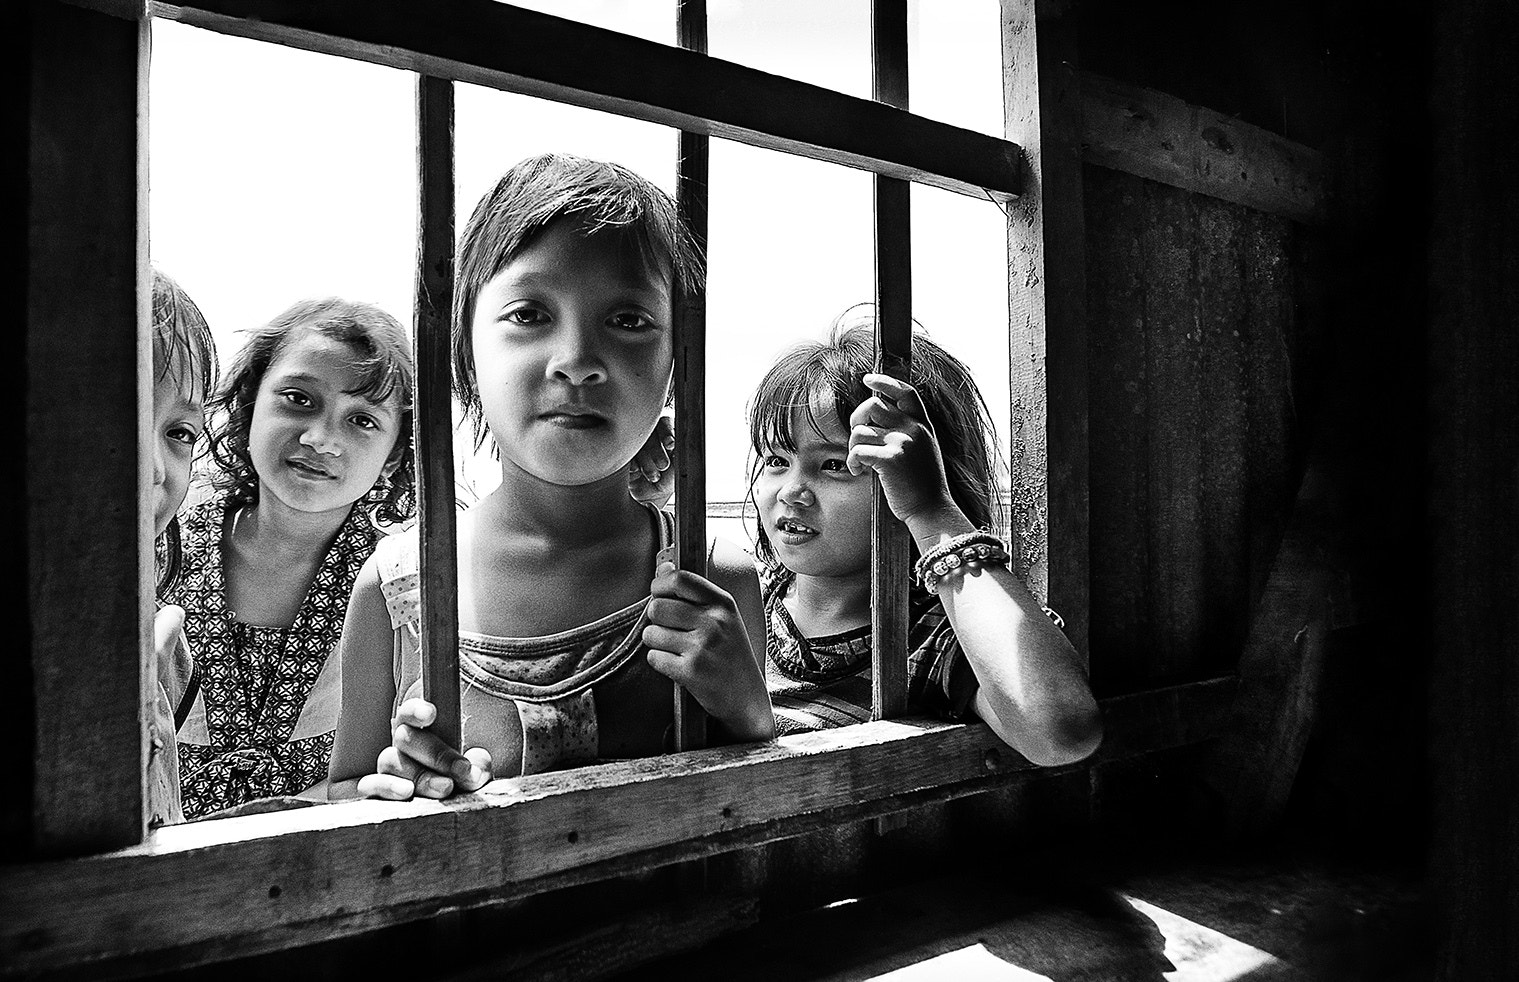 Photograph Next Generation by Amril Nuryan on 500px